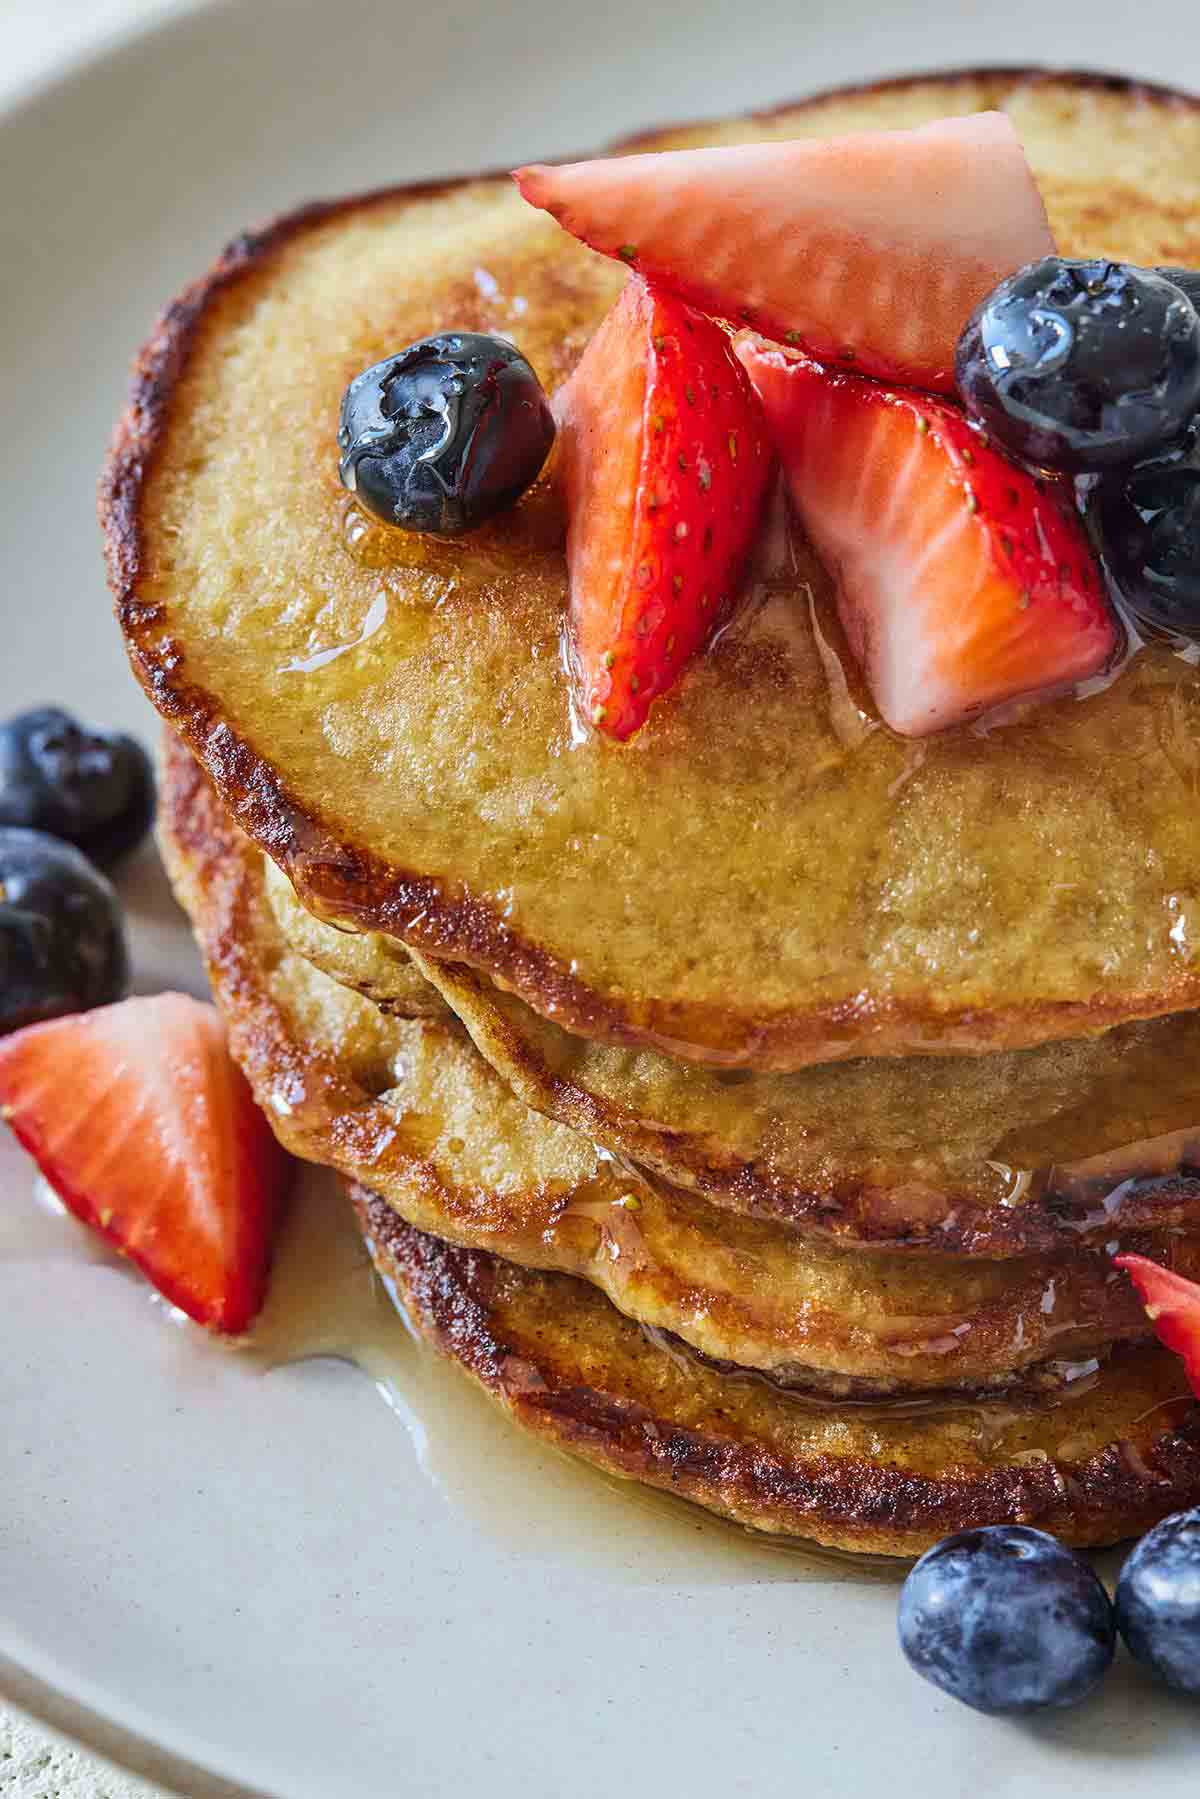 A stack of oatmeal banana pancakes with syrup, strawberries, and blueberries on top.